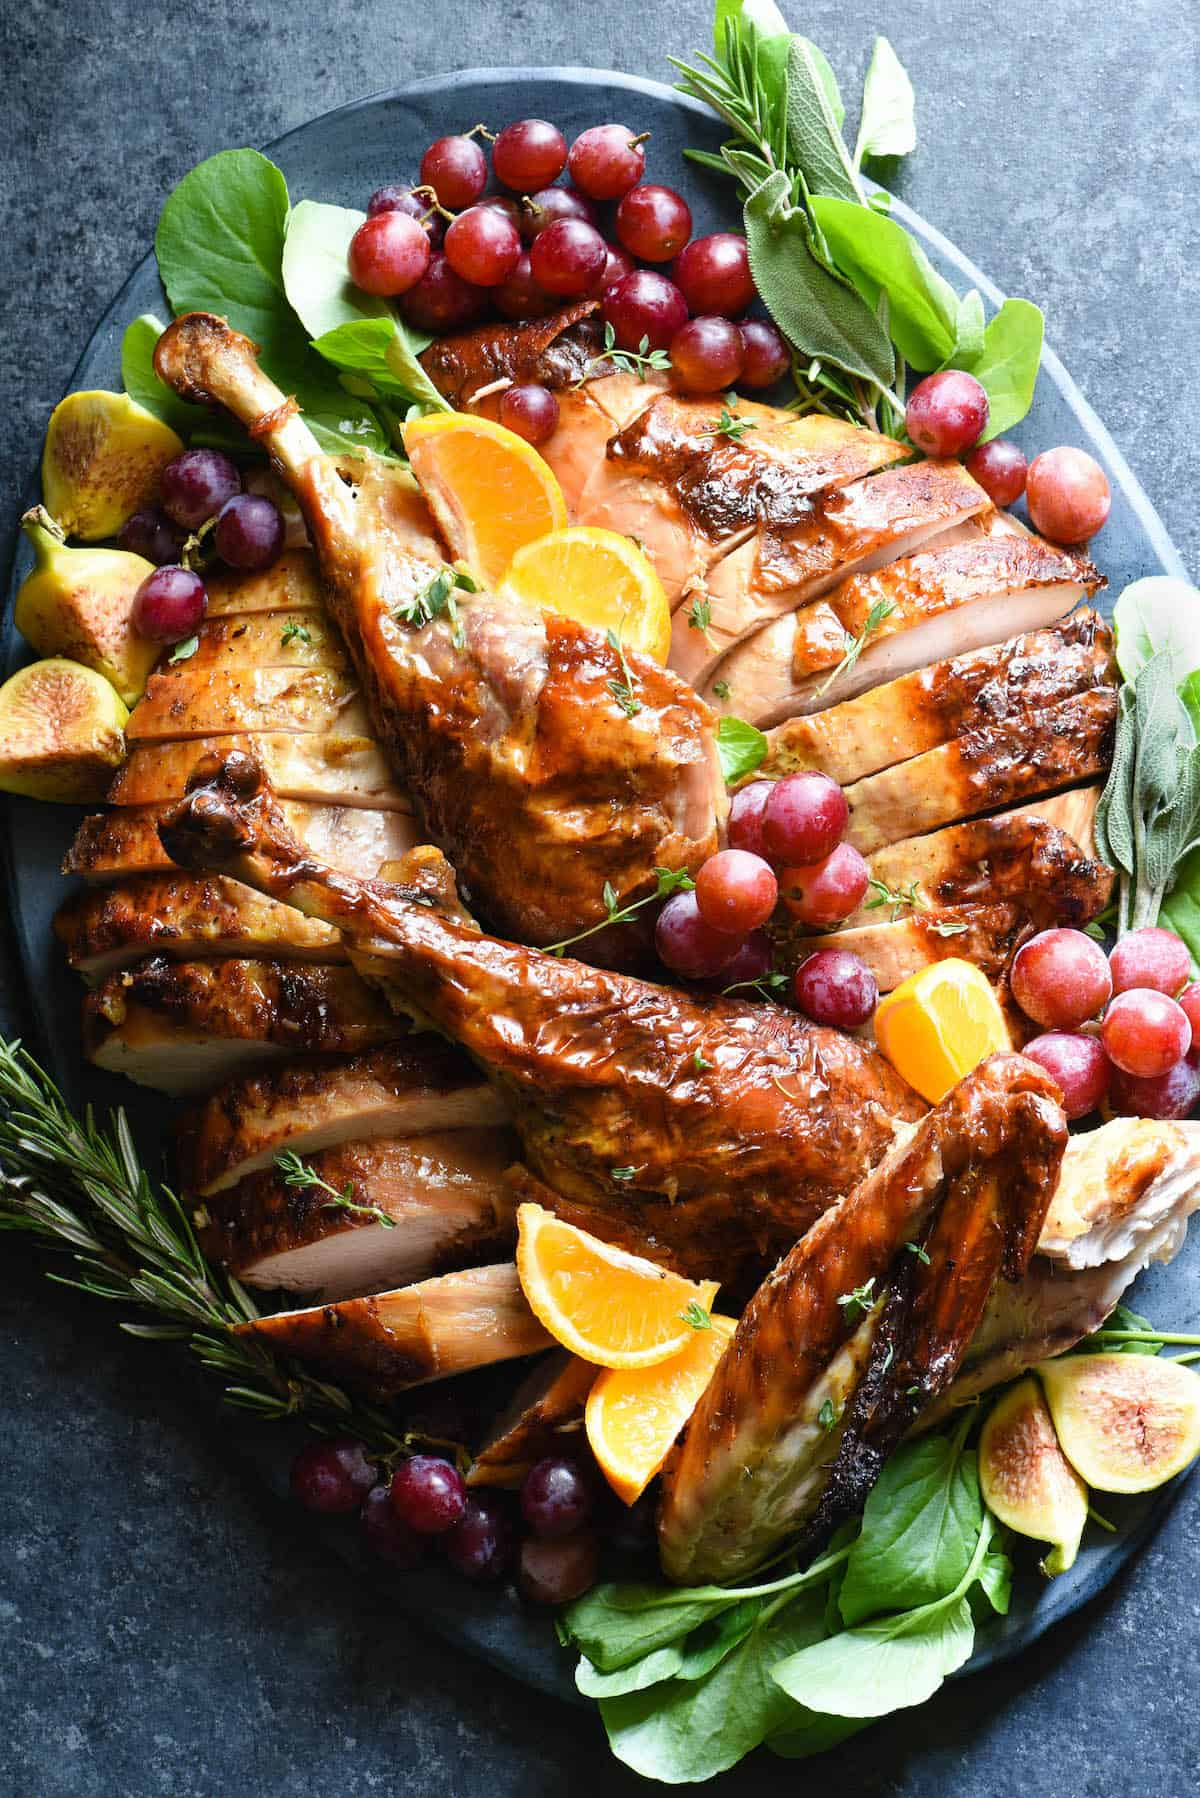 Large platter filled with a roasted turkey with maple bourbon glaze, cut up into pieces. Platter is garnished with fruits and herbs.